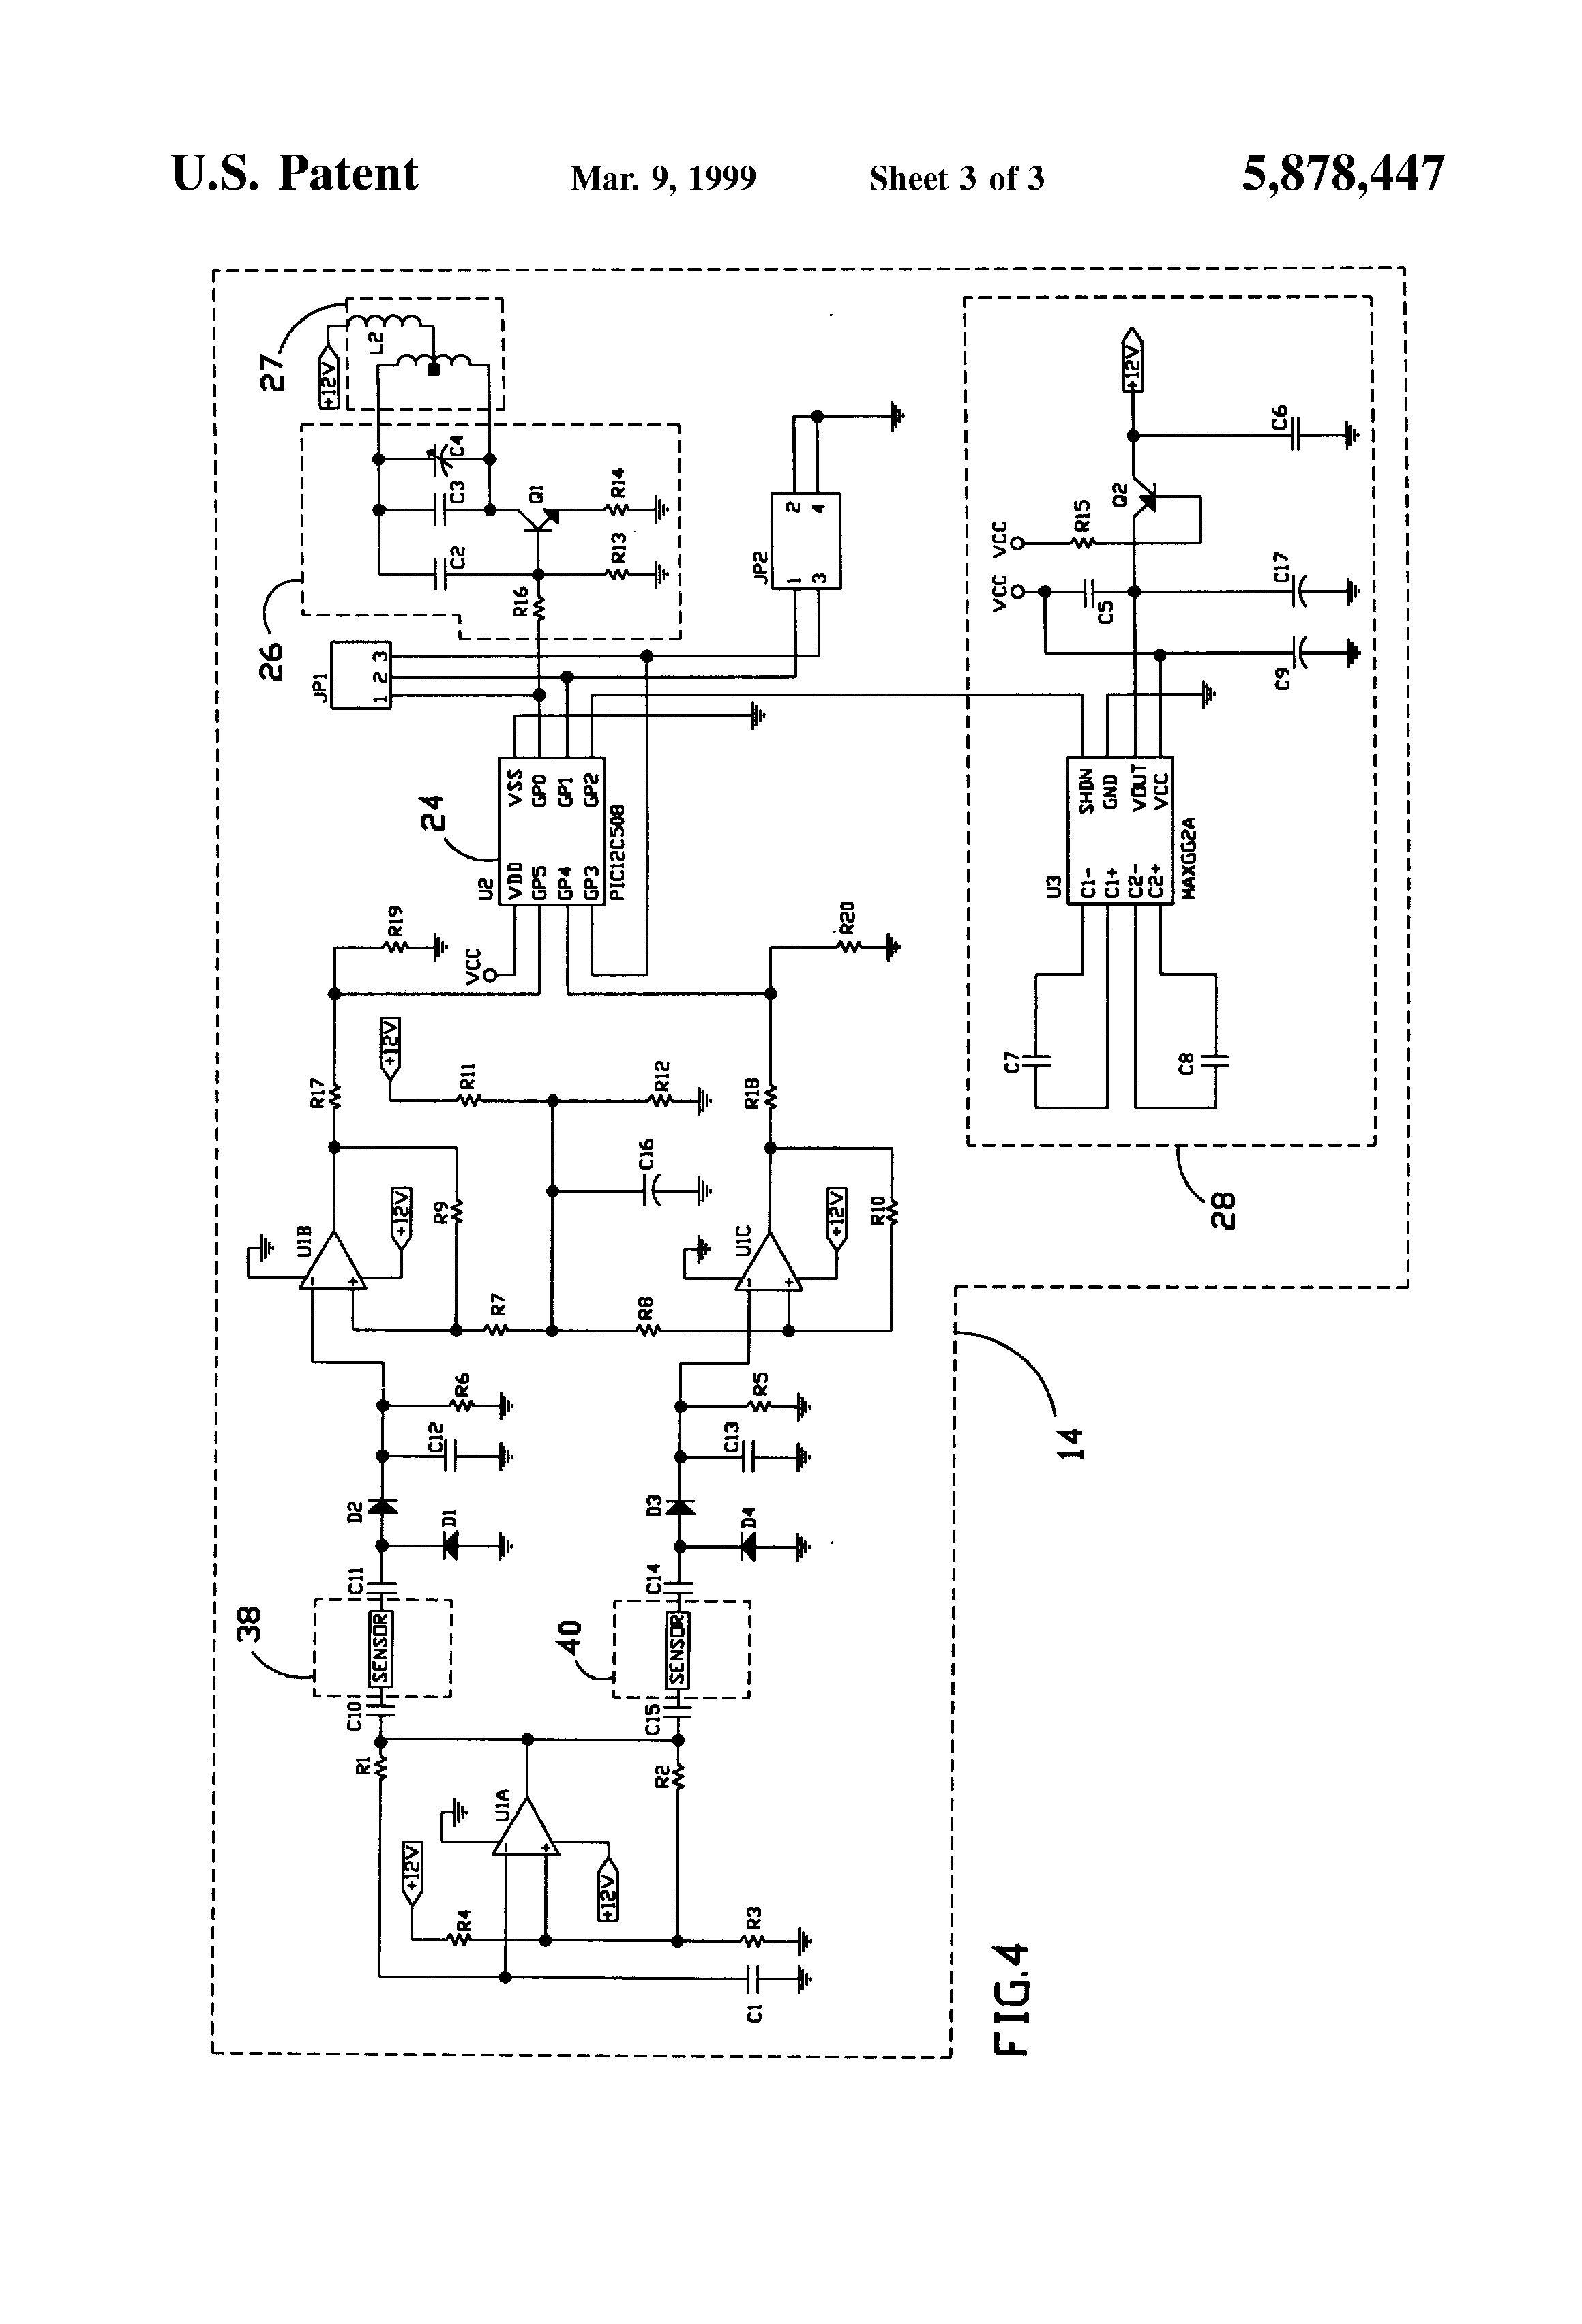 Patent Us5878447 Automatic Water Regulator Apparatus For Filling A Swimming Pool Or